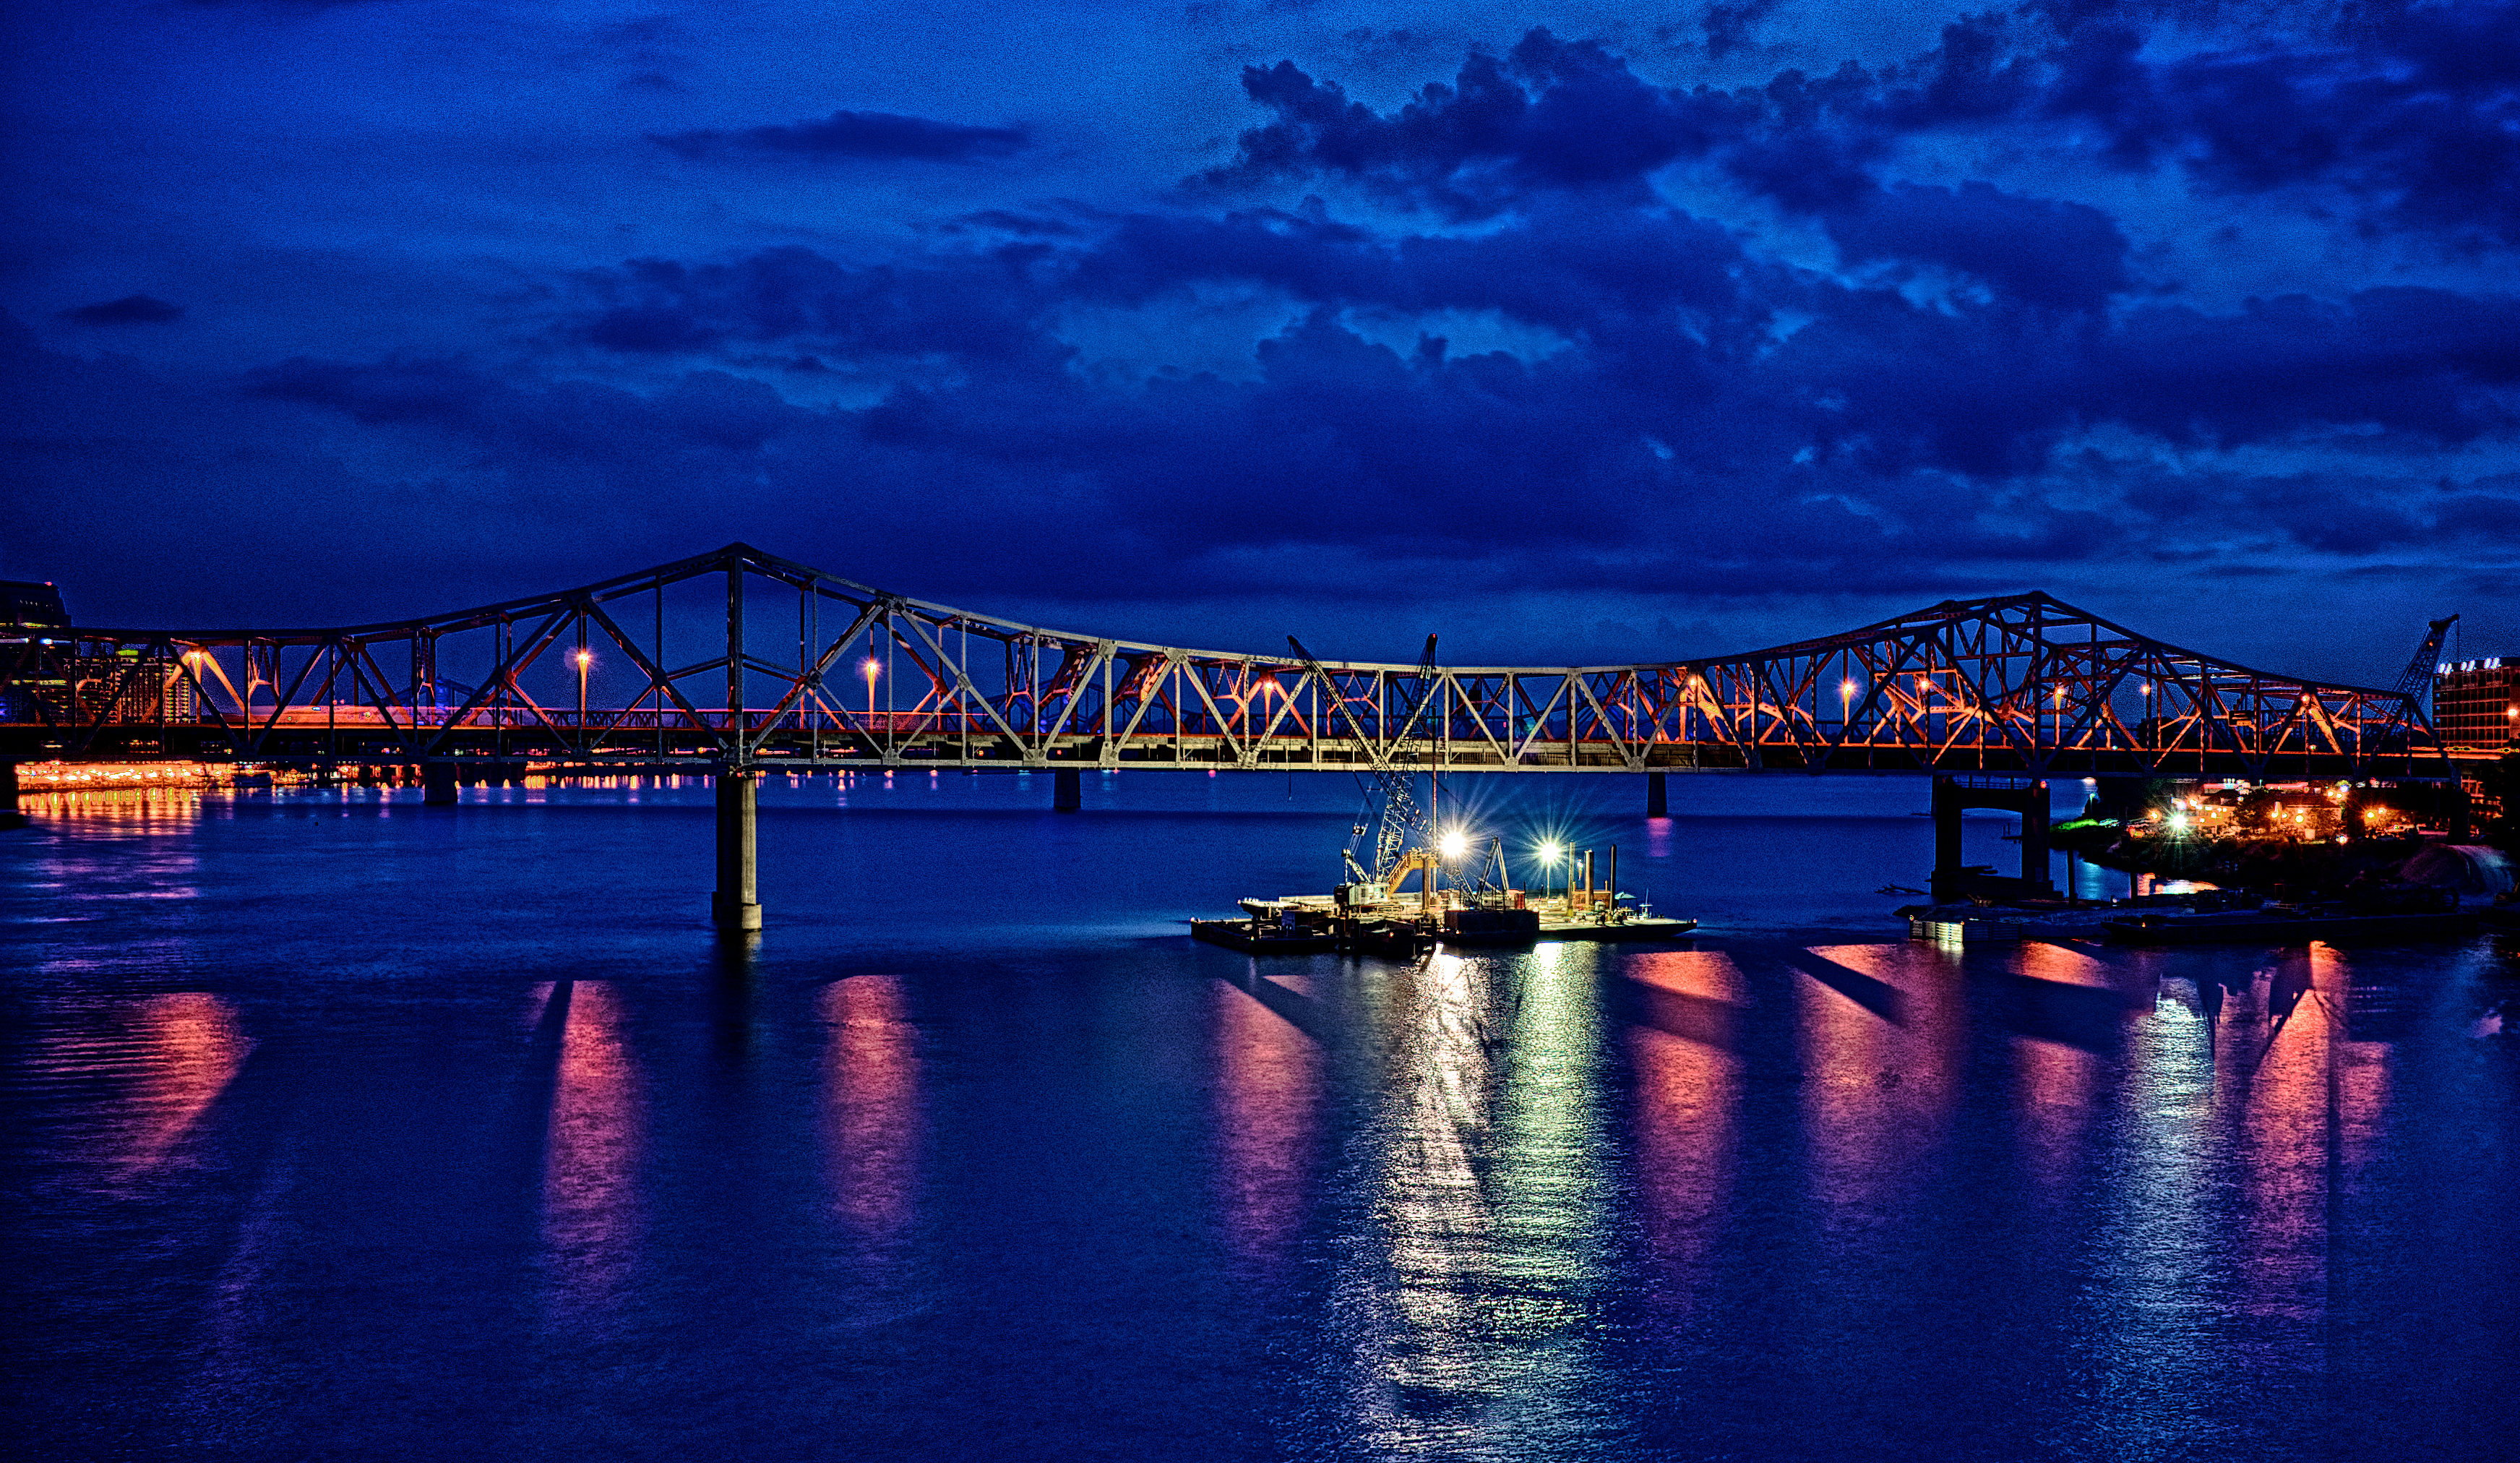 Ohio River Bridges Project Downtown Span #1